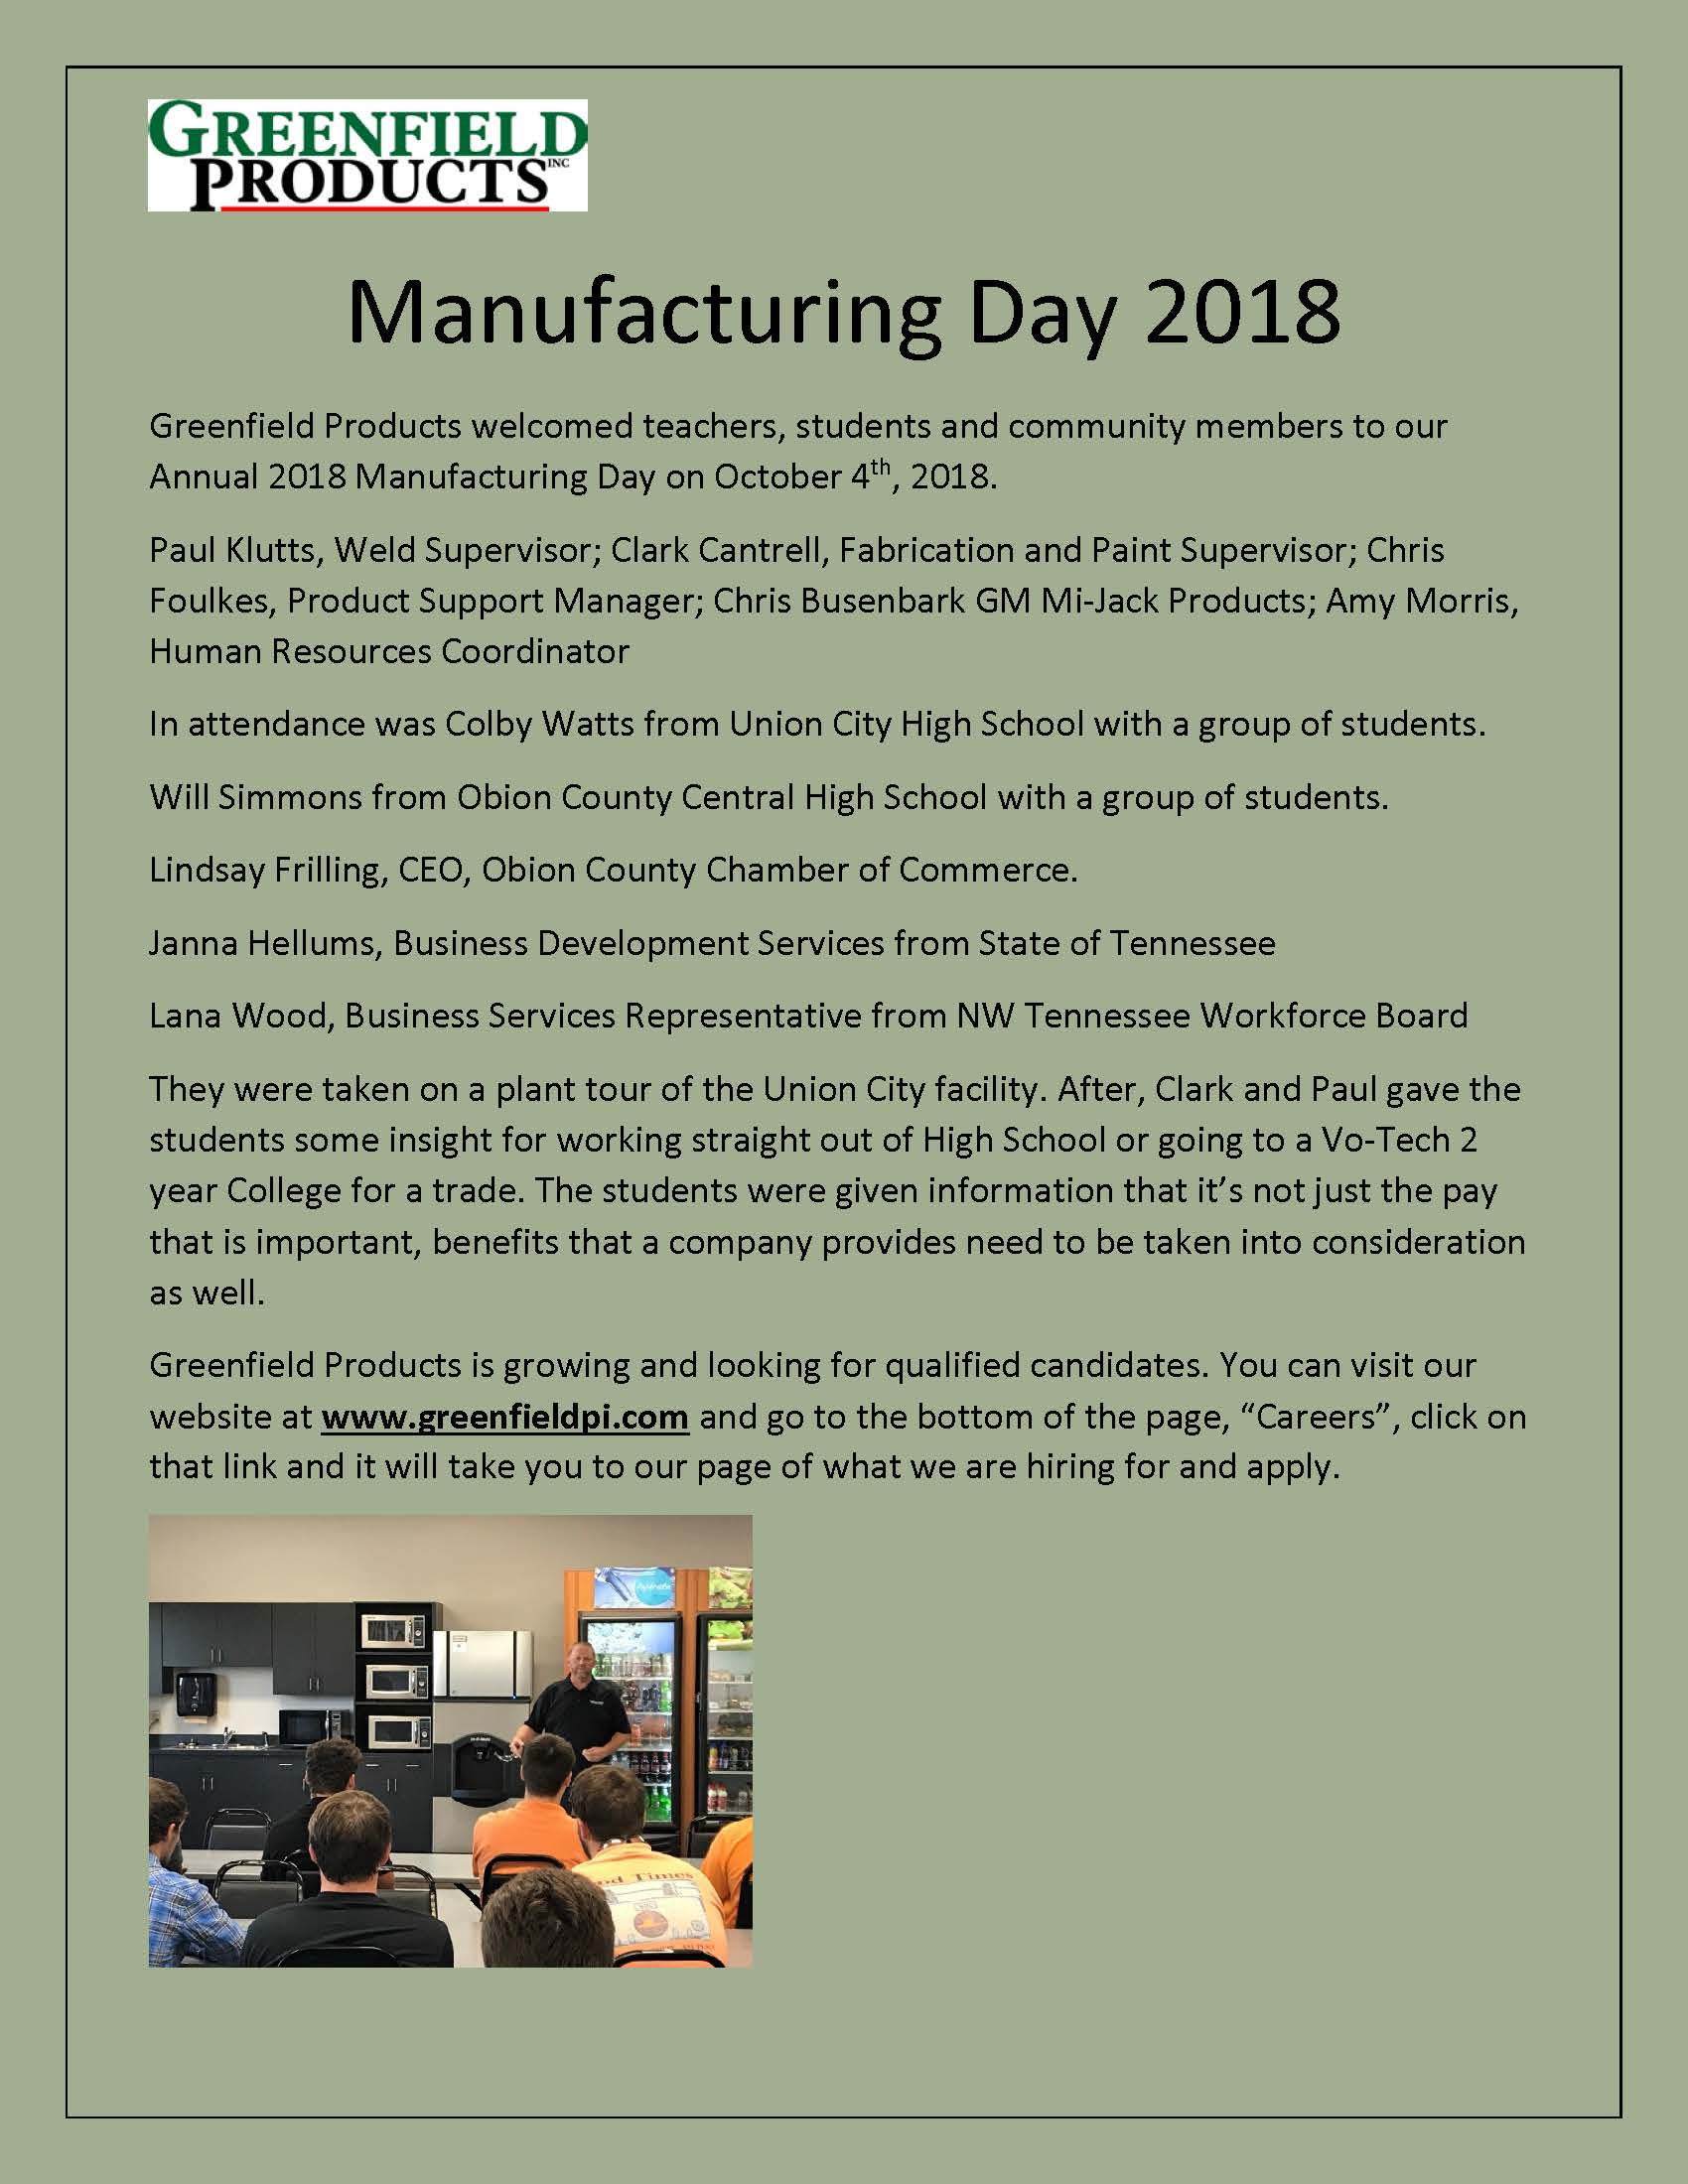 Manufacturing Day 2018 Greenfield edit Page 1